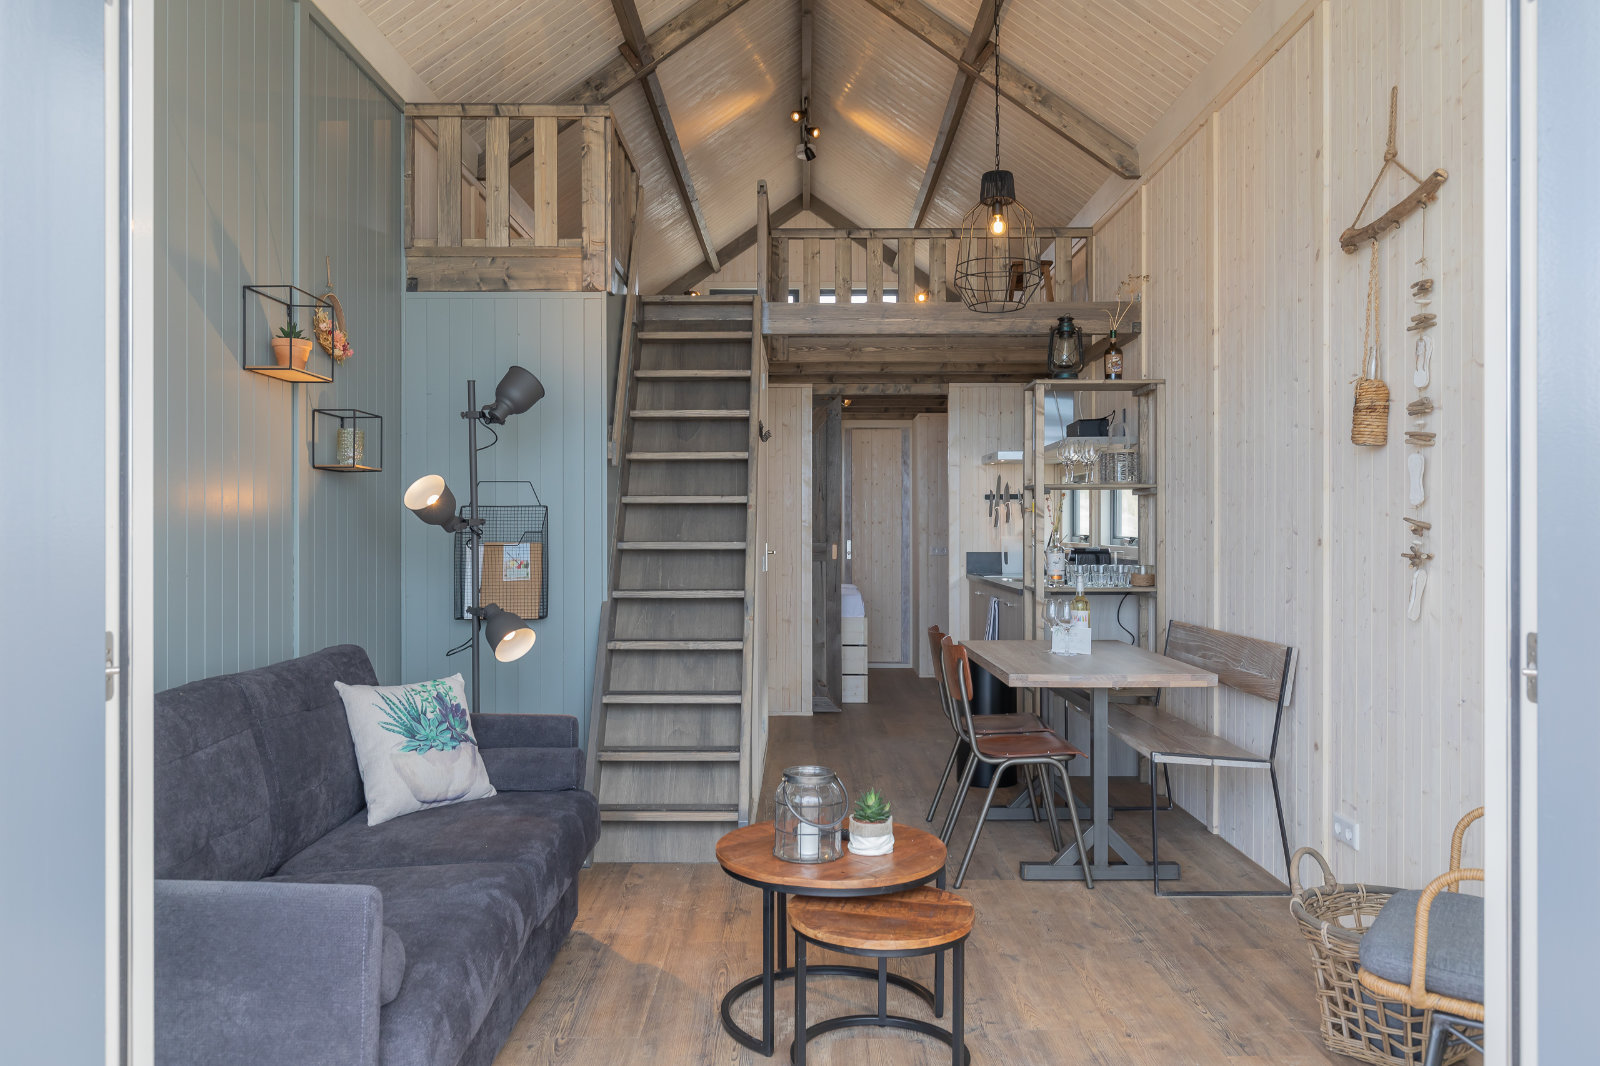 MK4 tiny house - living room front view